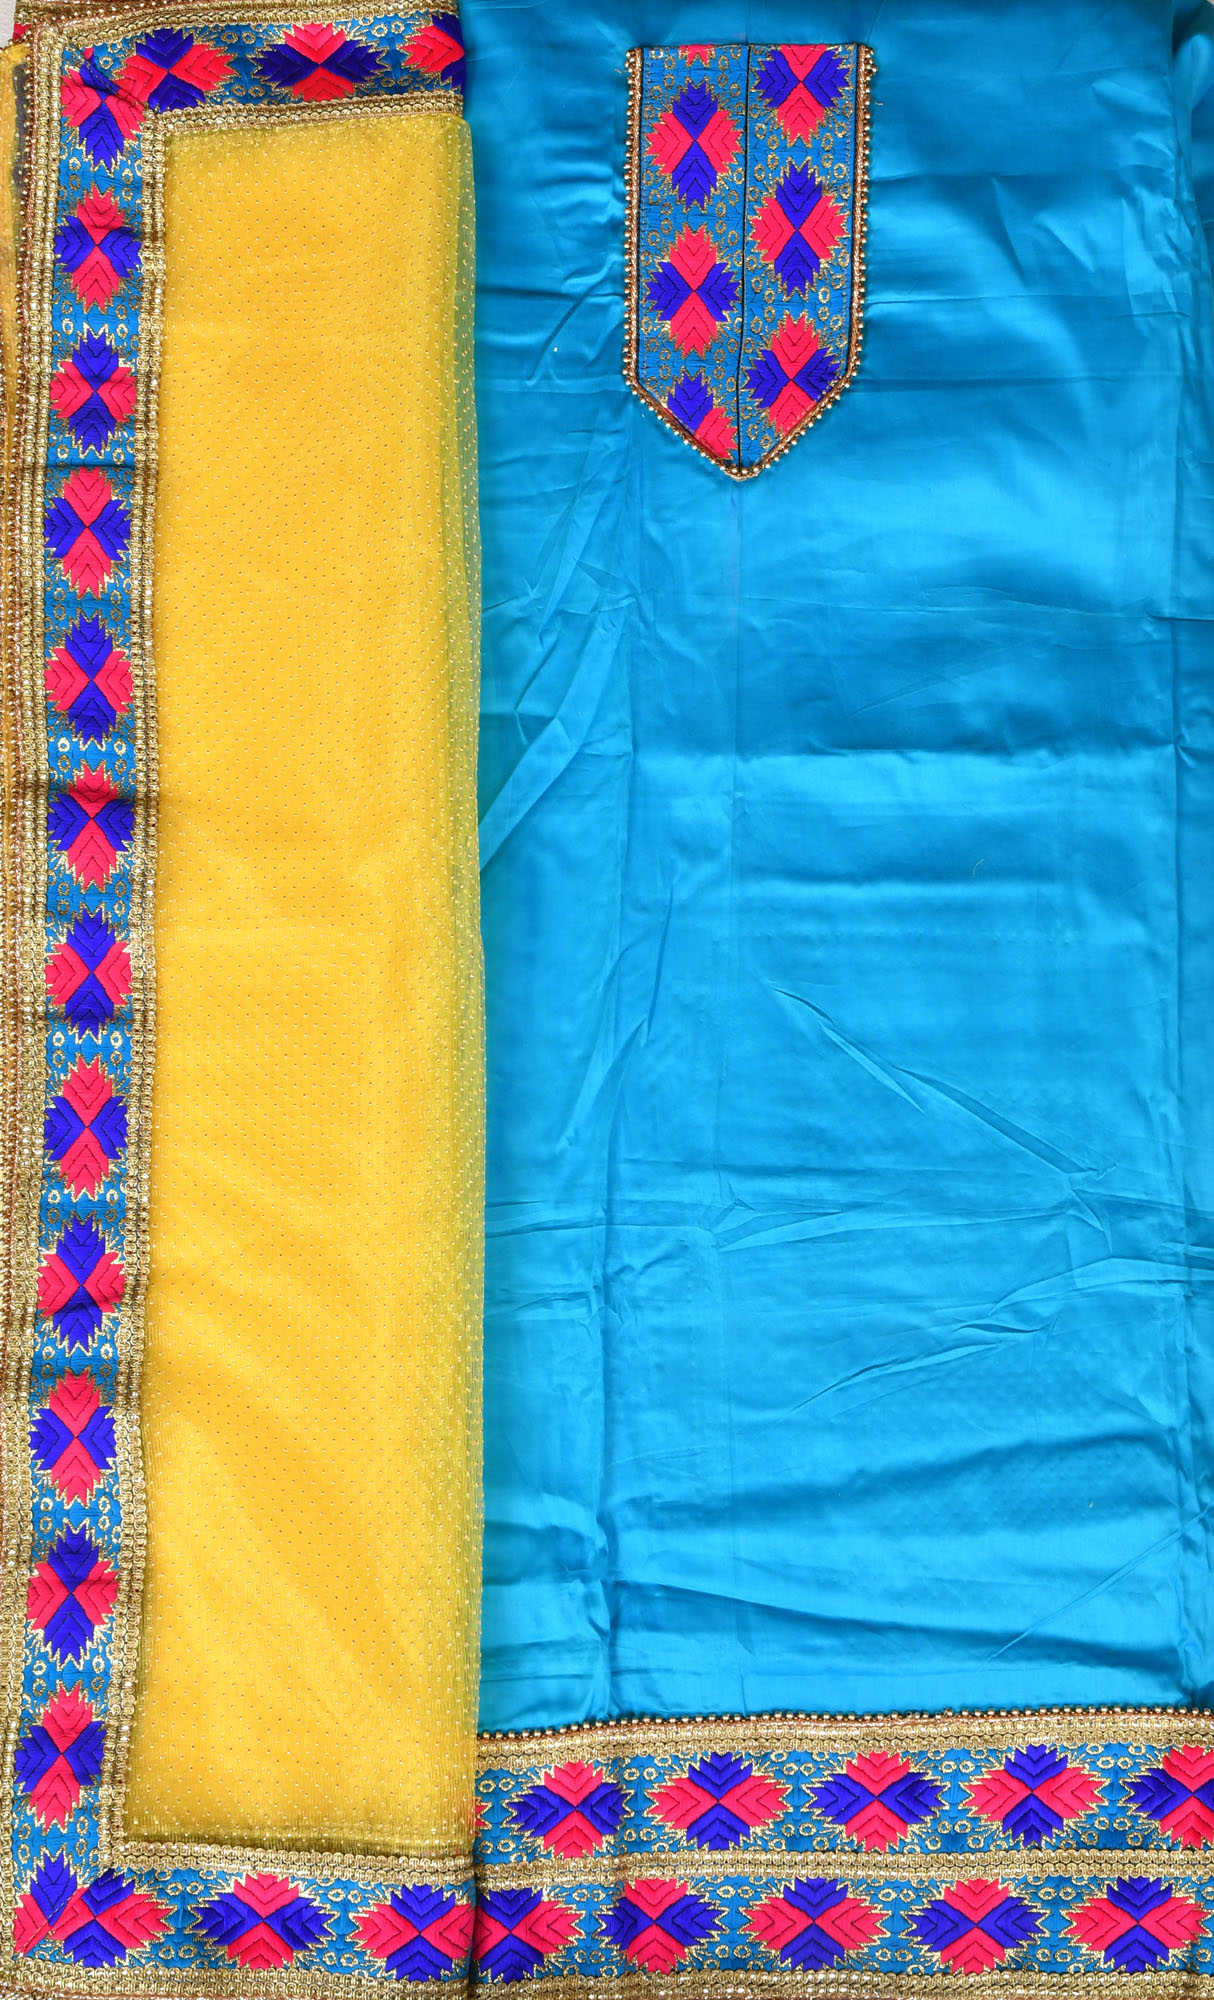 c43c5c4a85 Cyan-Blue and Yellow Phulkari Salwar Kameez Fabric from Punjab with  Embroidered Patches and Net Dupatta